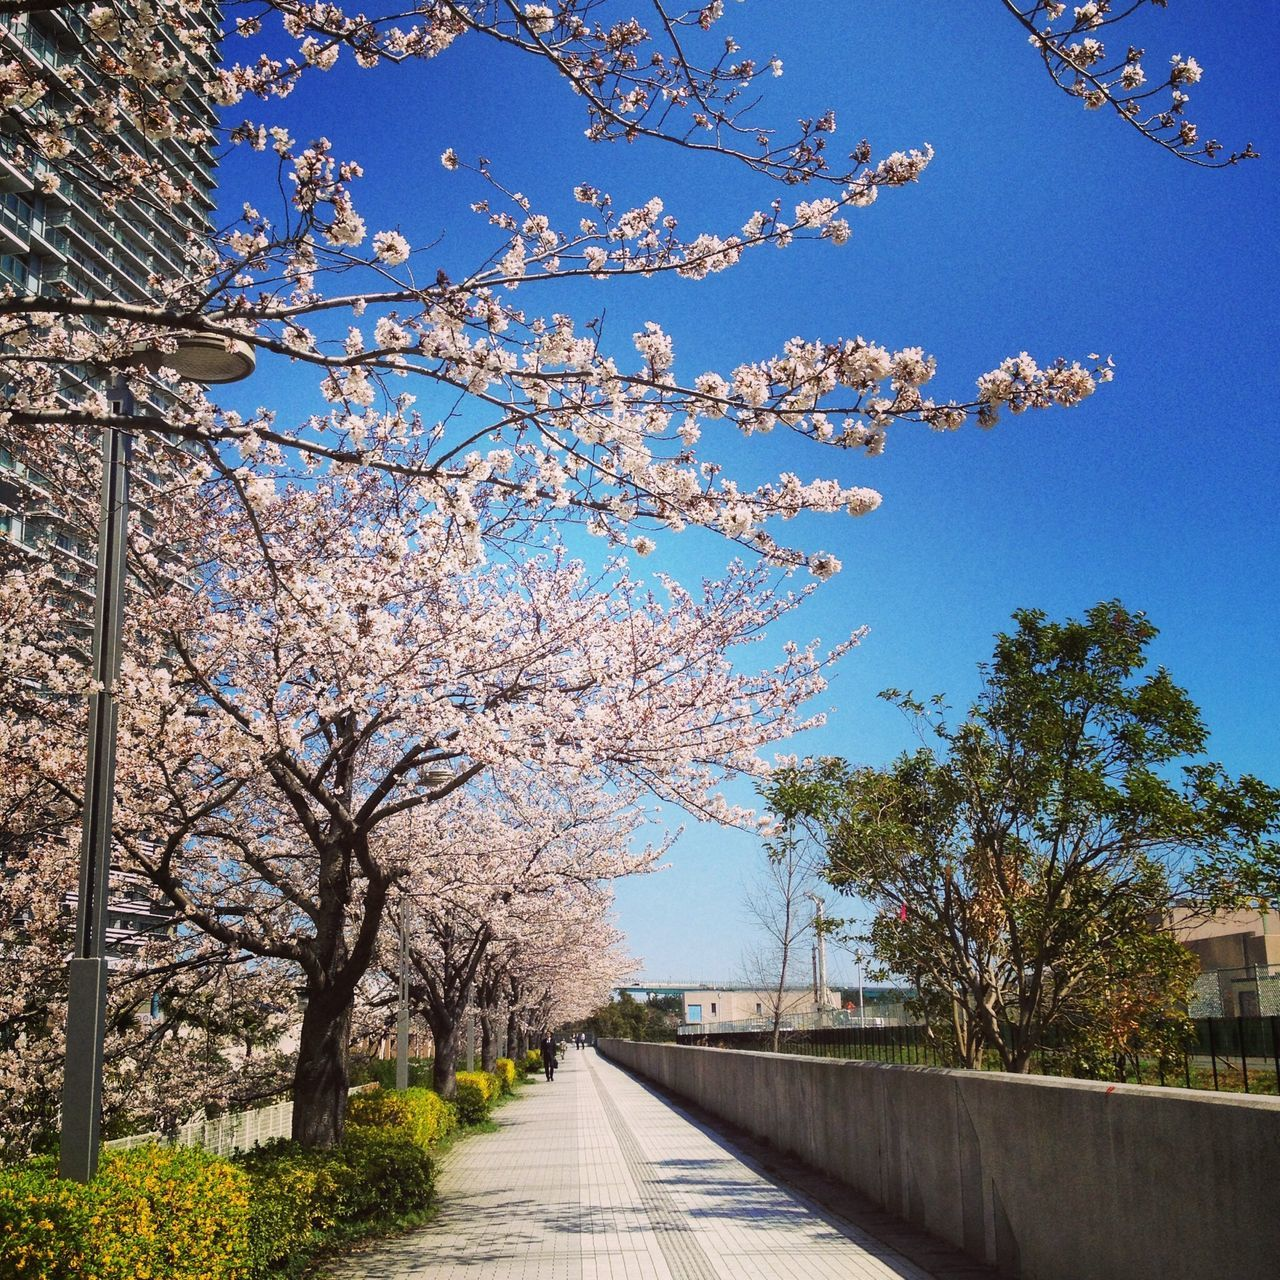 Pathway along flower trees